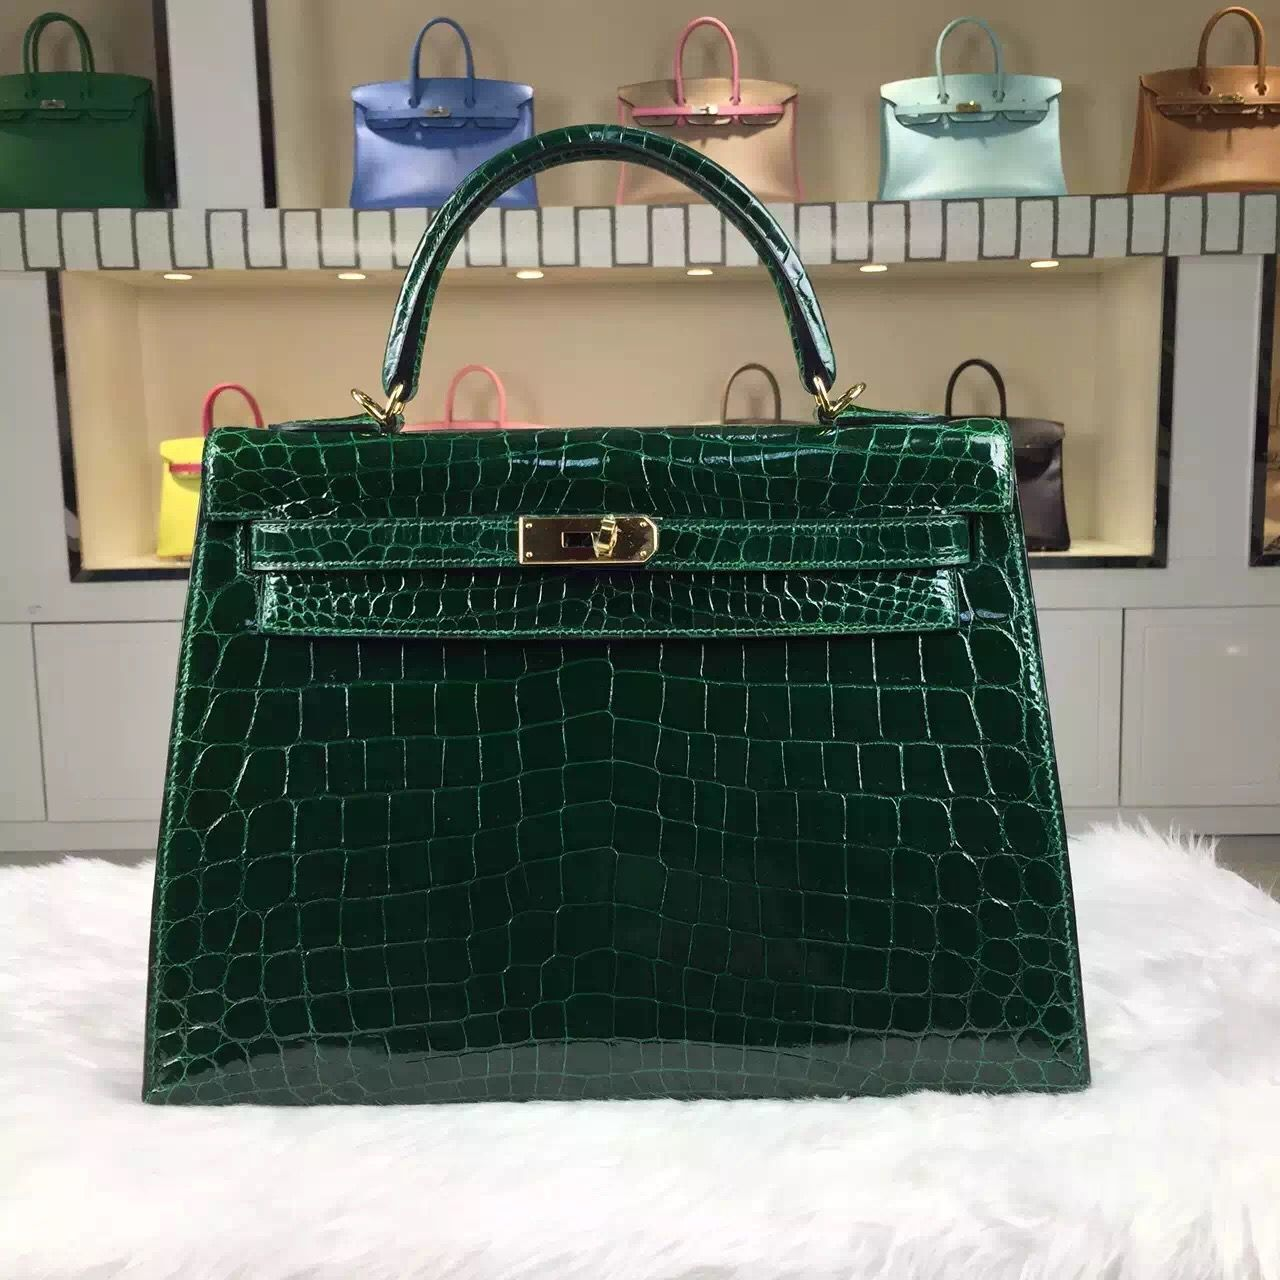 7ab42ae541 Brand  Hermes  Style  Kelly Bag32CM   Material  HCP Shiny Crocodile Leather Color CK67  Vert fonce  Hardware  gold silver  Accessories  Padlock and keys